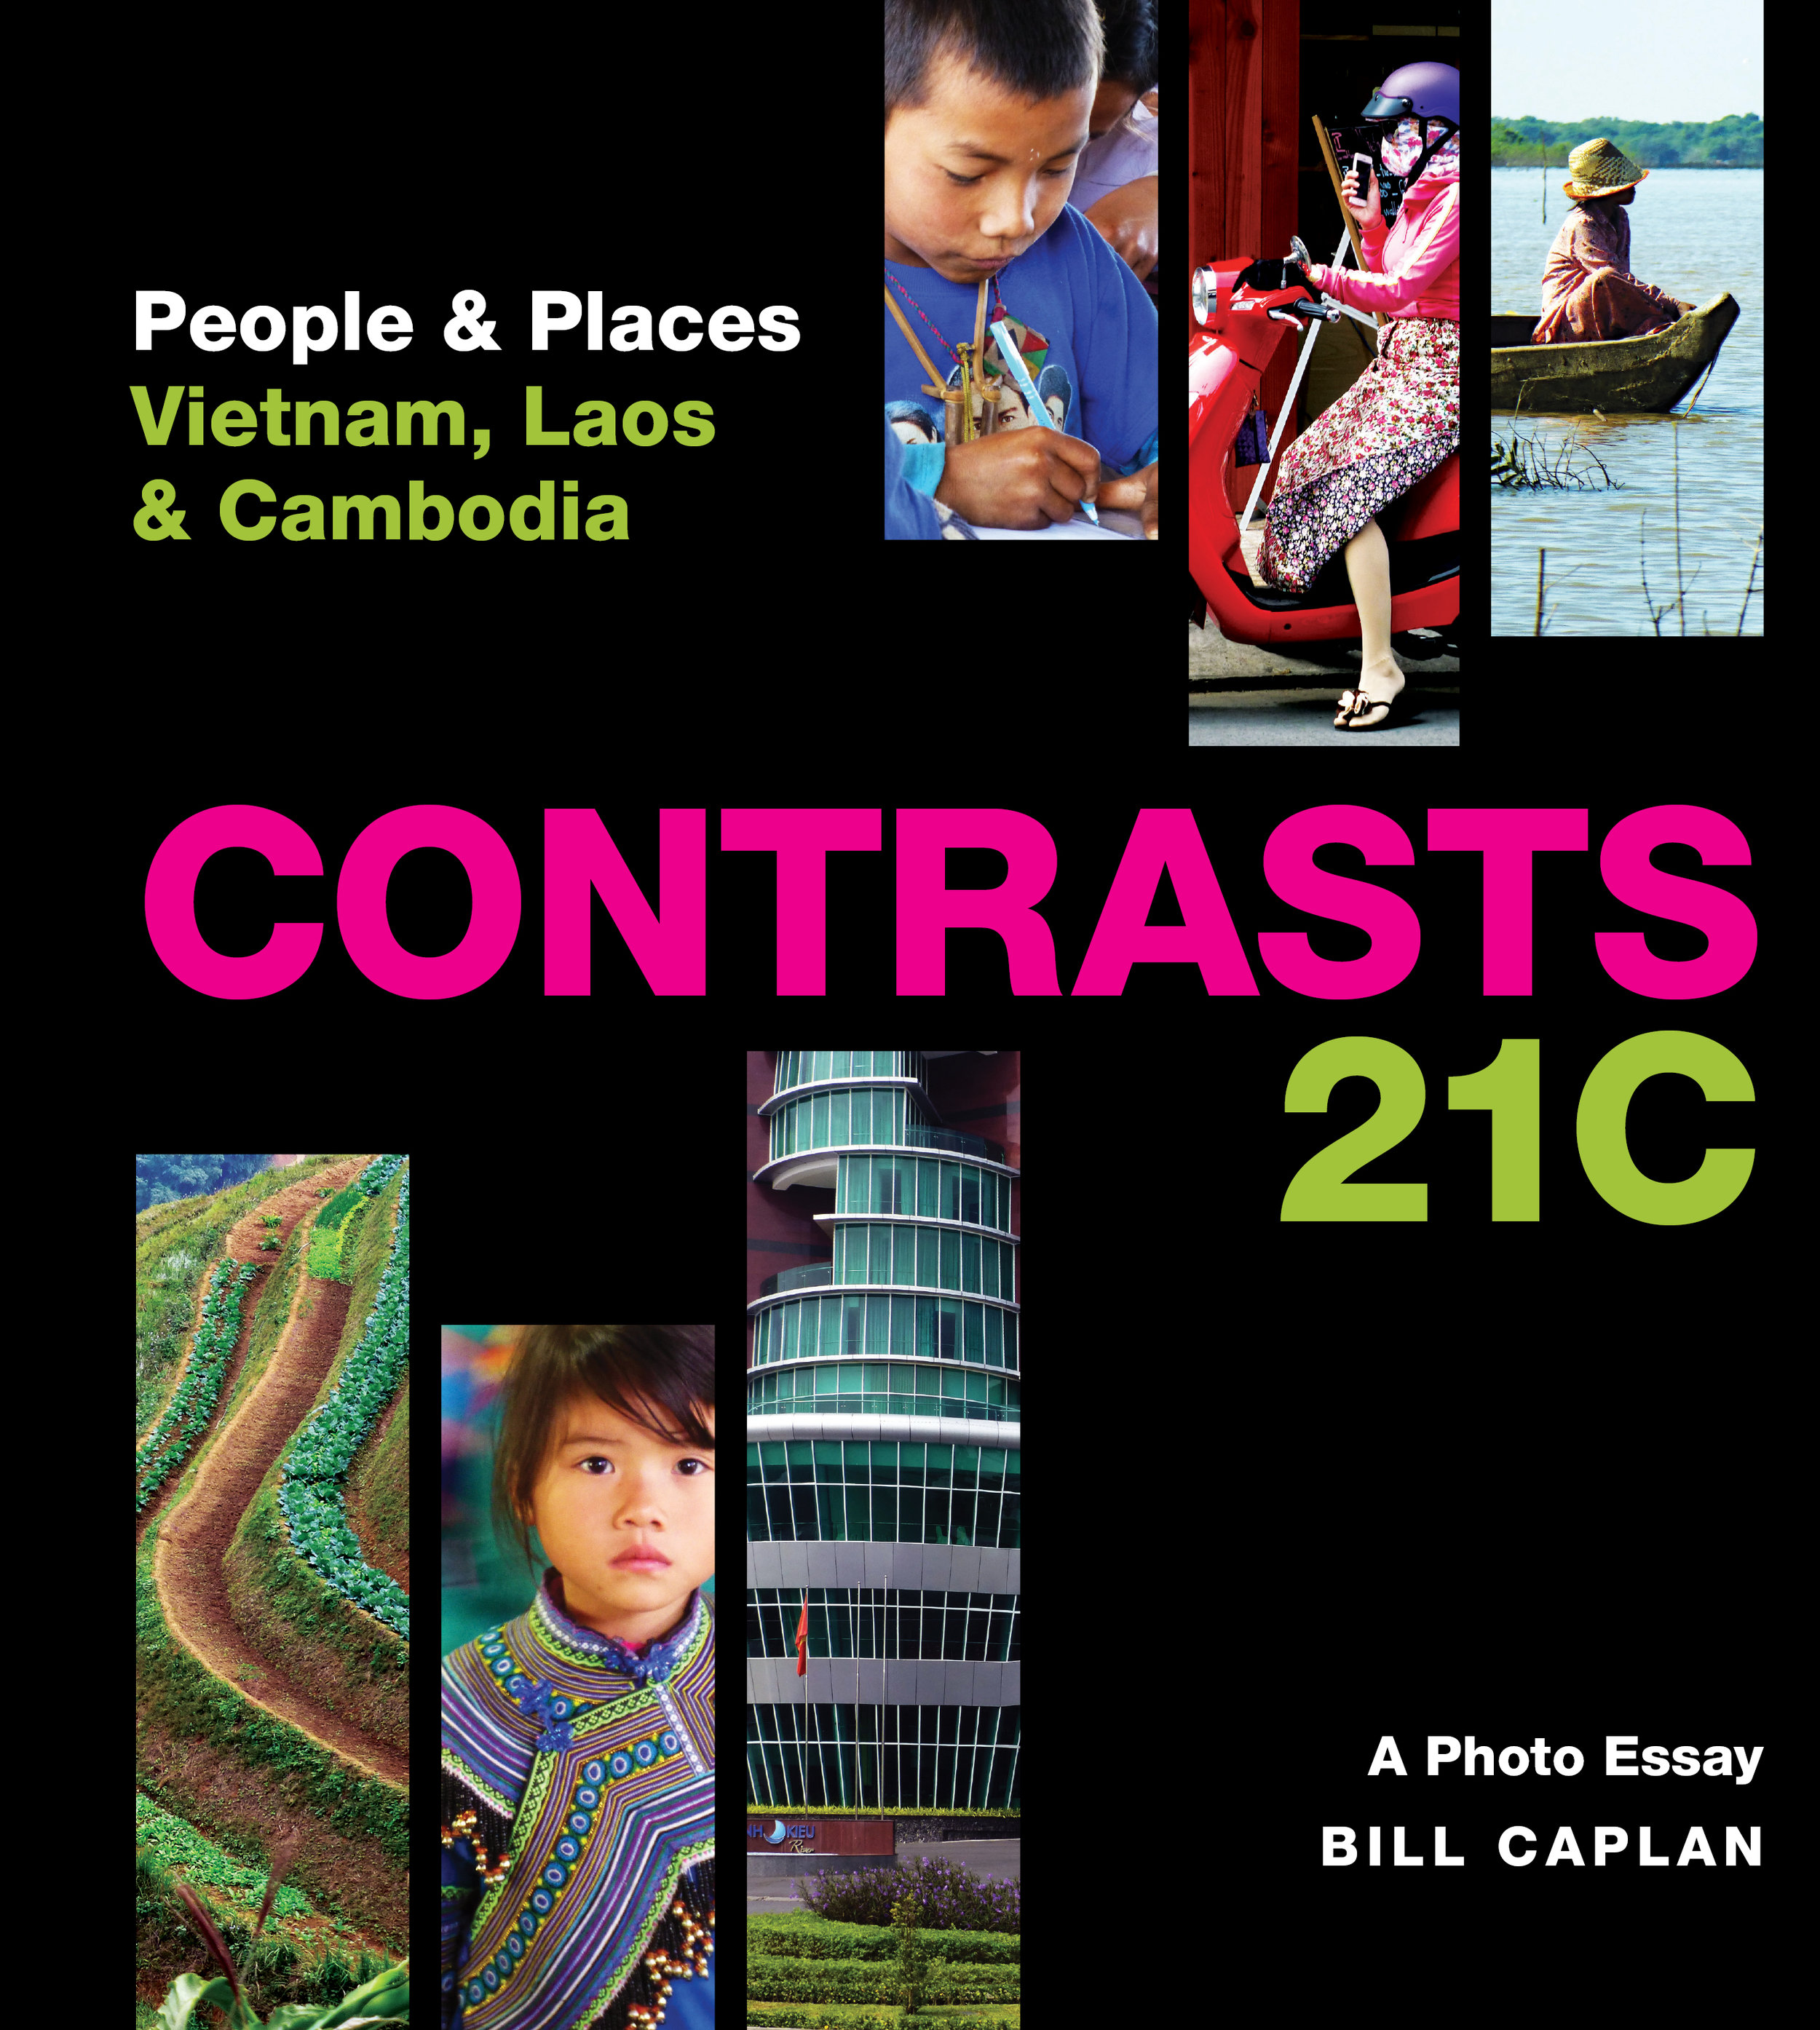 Bill Caplan's evocative photography transports the reader into distant locales in Vietnam, Laos and Cambodia to unveil the incredible contrasts between rural and city life still present in this 21st century. Addressing the cultural diversity of this region and its challenges, it draws attention to the conflicts between self-sufficiency and sustainability in an admixture of ancient tradition and present-day reality. Beautifully expressed in full color with descriptive text. -